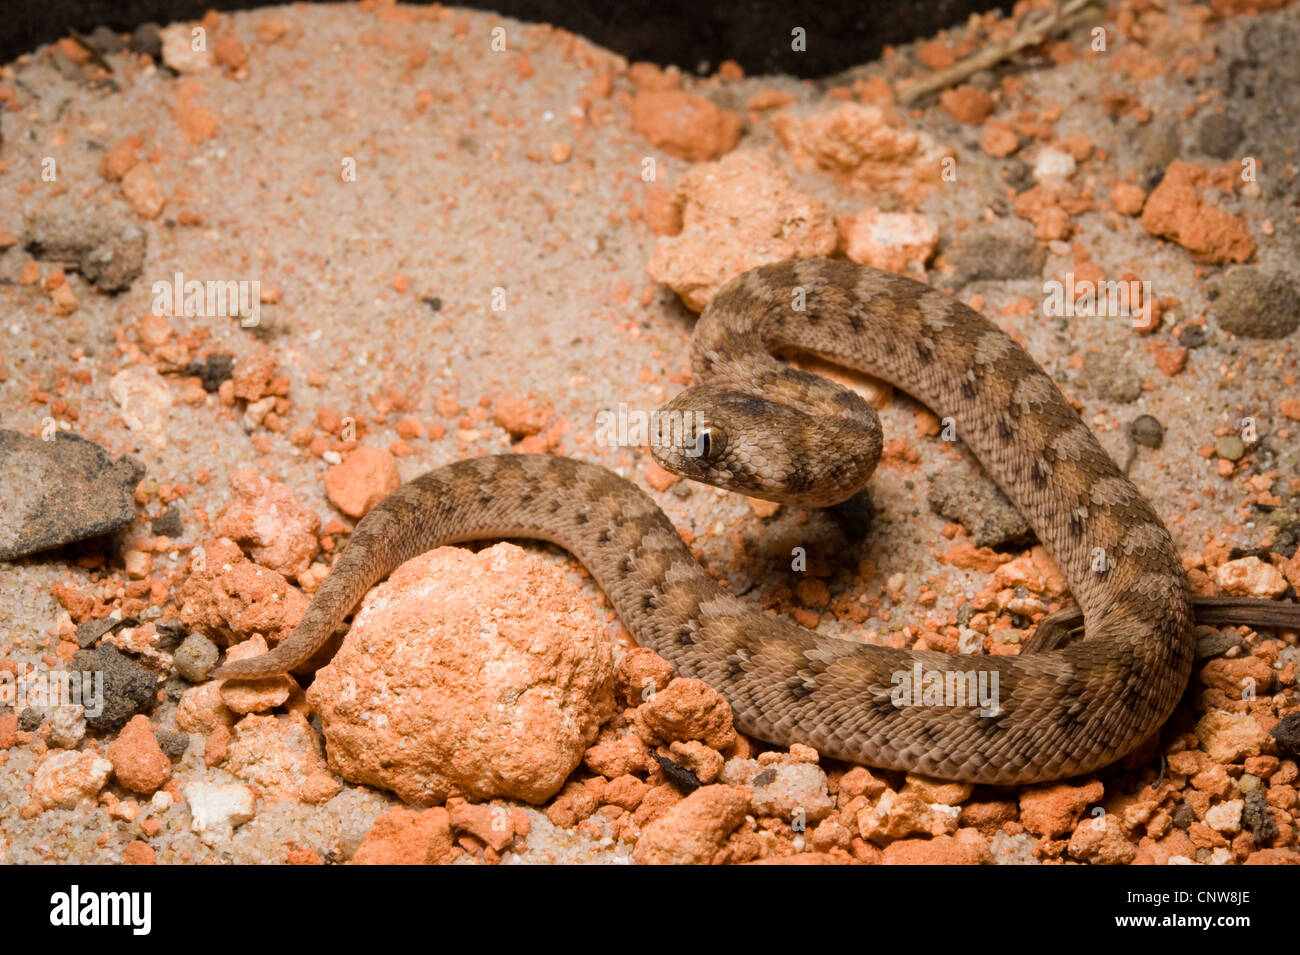 Baby Saw Scaled Viper